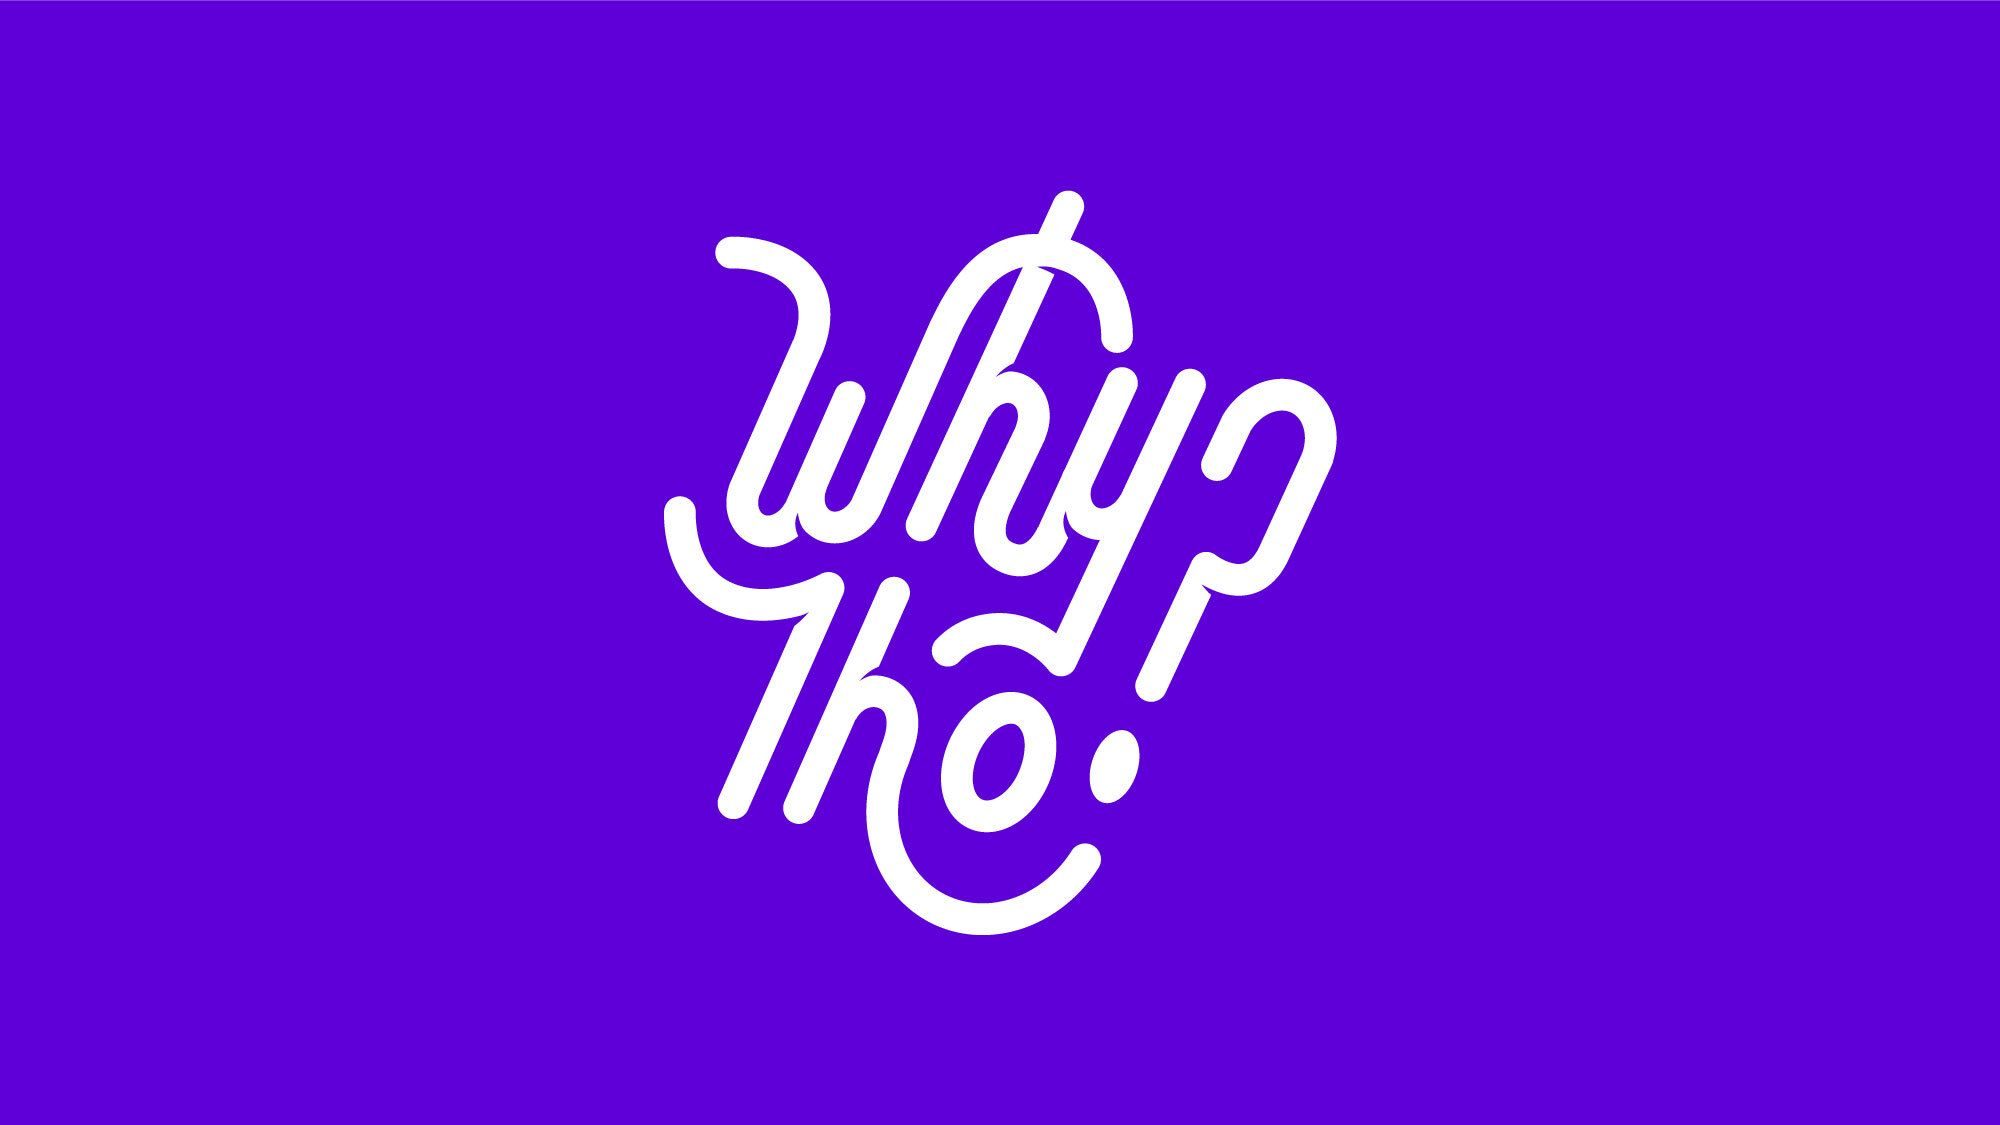 Why Tho Podcast: August 5 - August 11, 2020